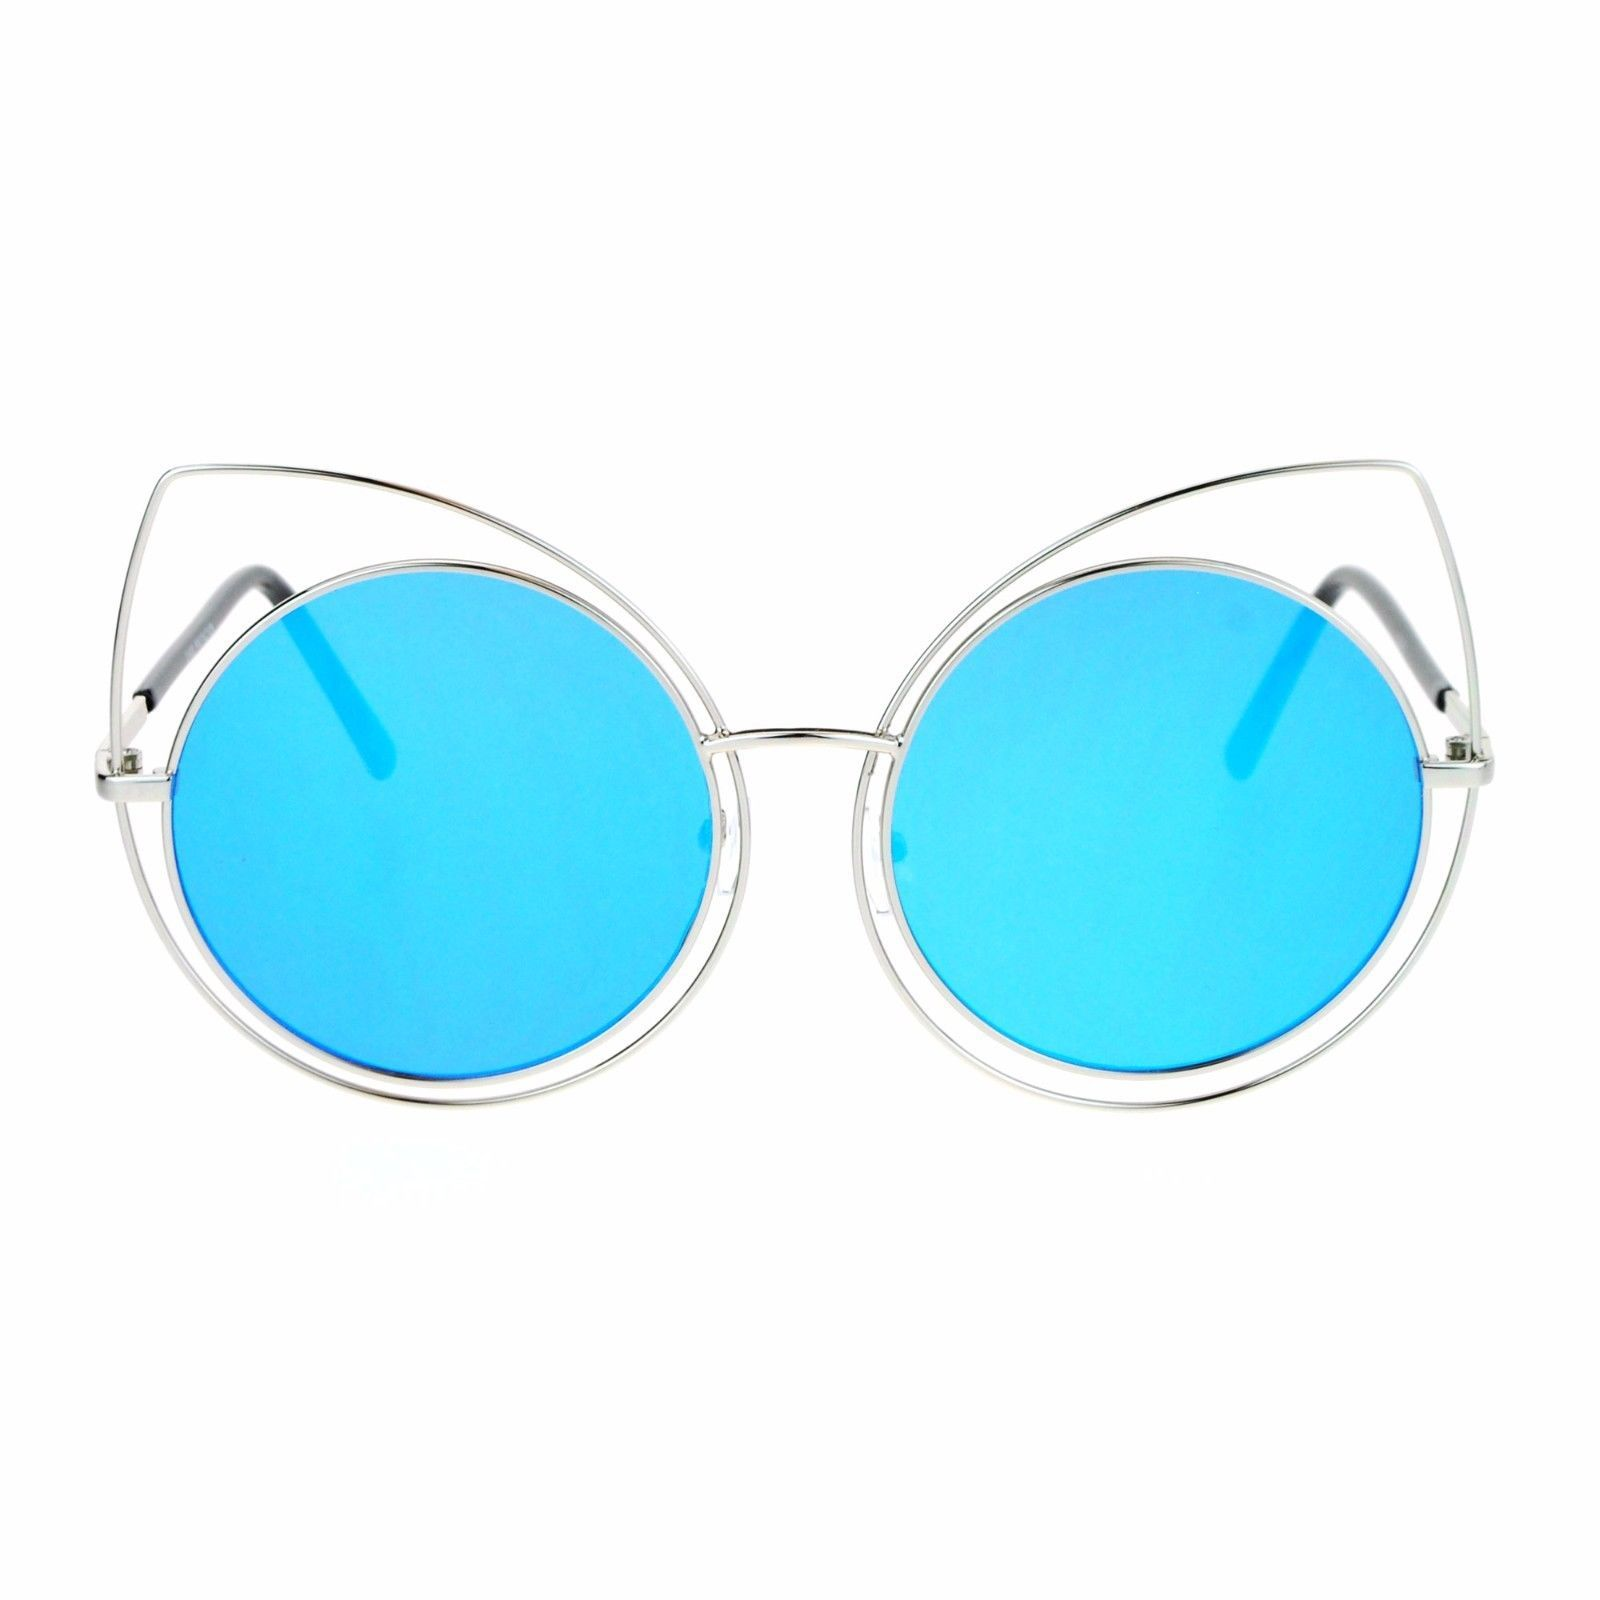 Womens Sunglasses Oversized Round Circle Cateye Double Frame Mirror Lens